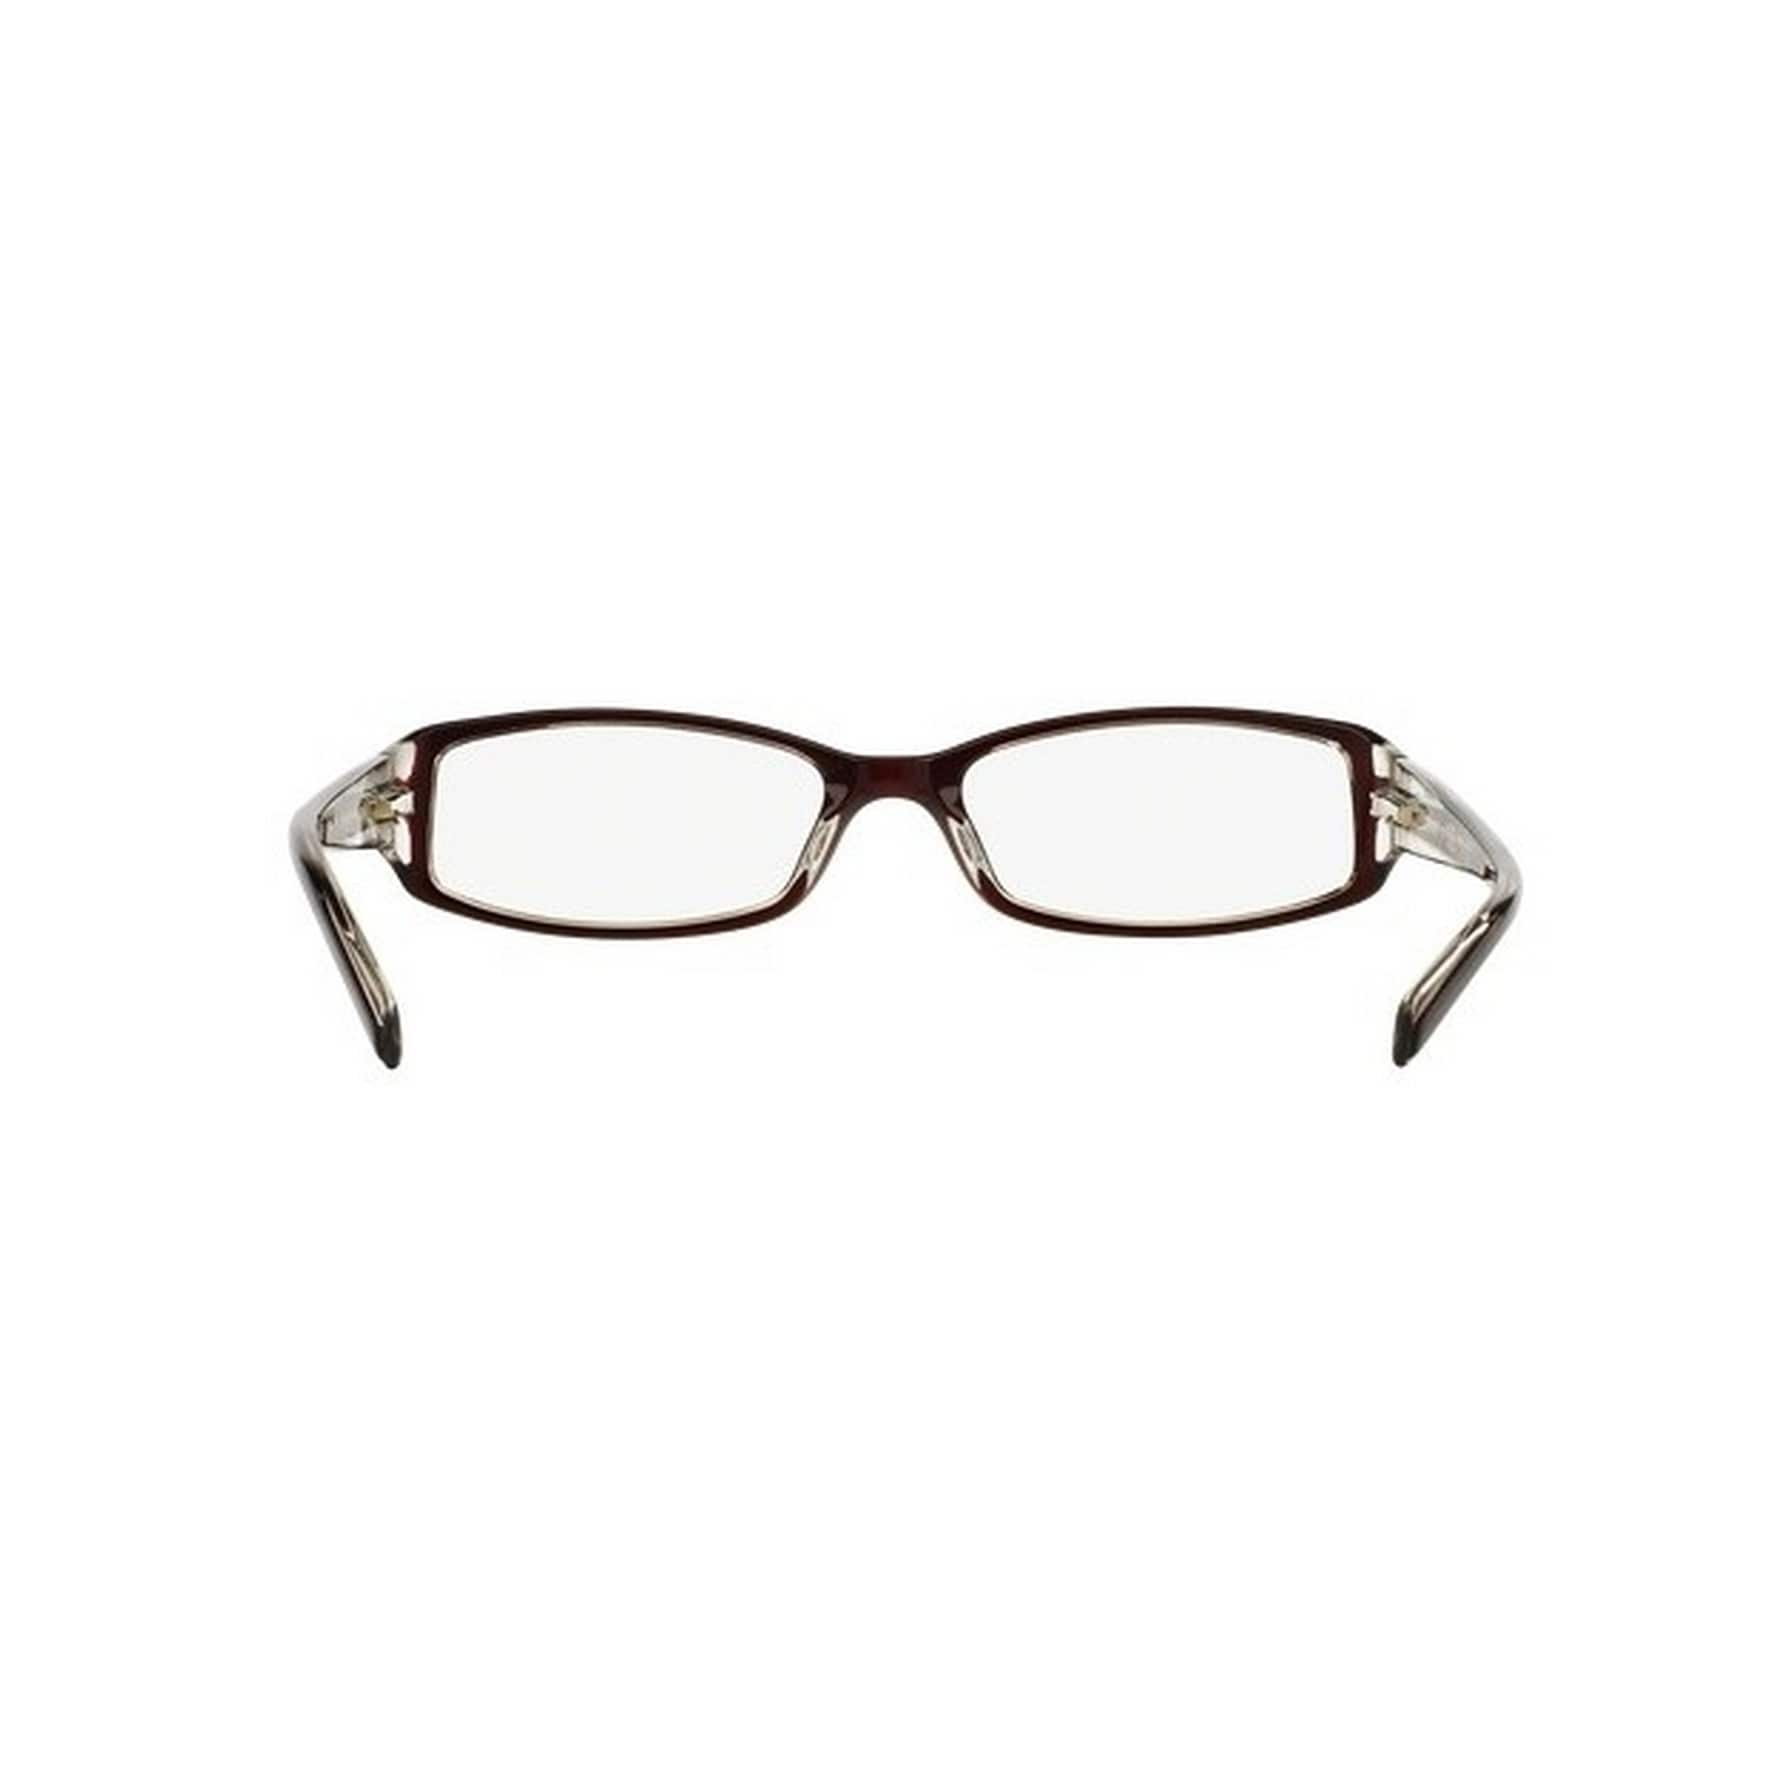 912a8a6c83e2 Shop Donna Karan DKNY Women s DY4593 3417 51 Square Plastic Red Clear  Eyeglasses - Ships To Canada - Overstock - 14780055